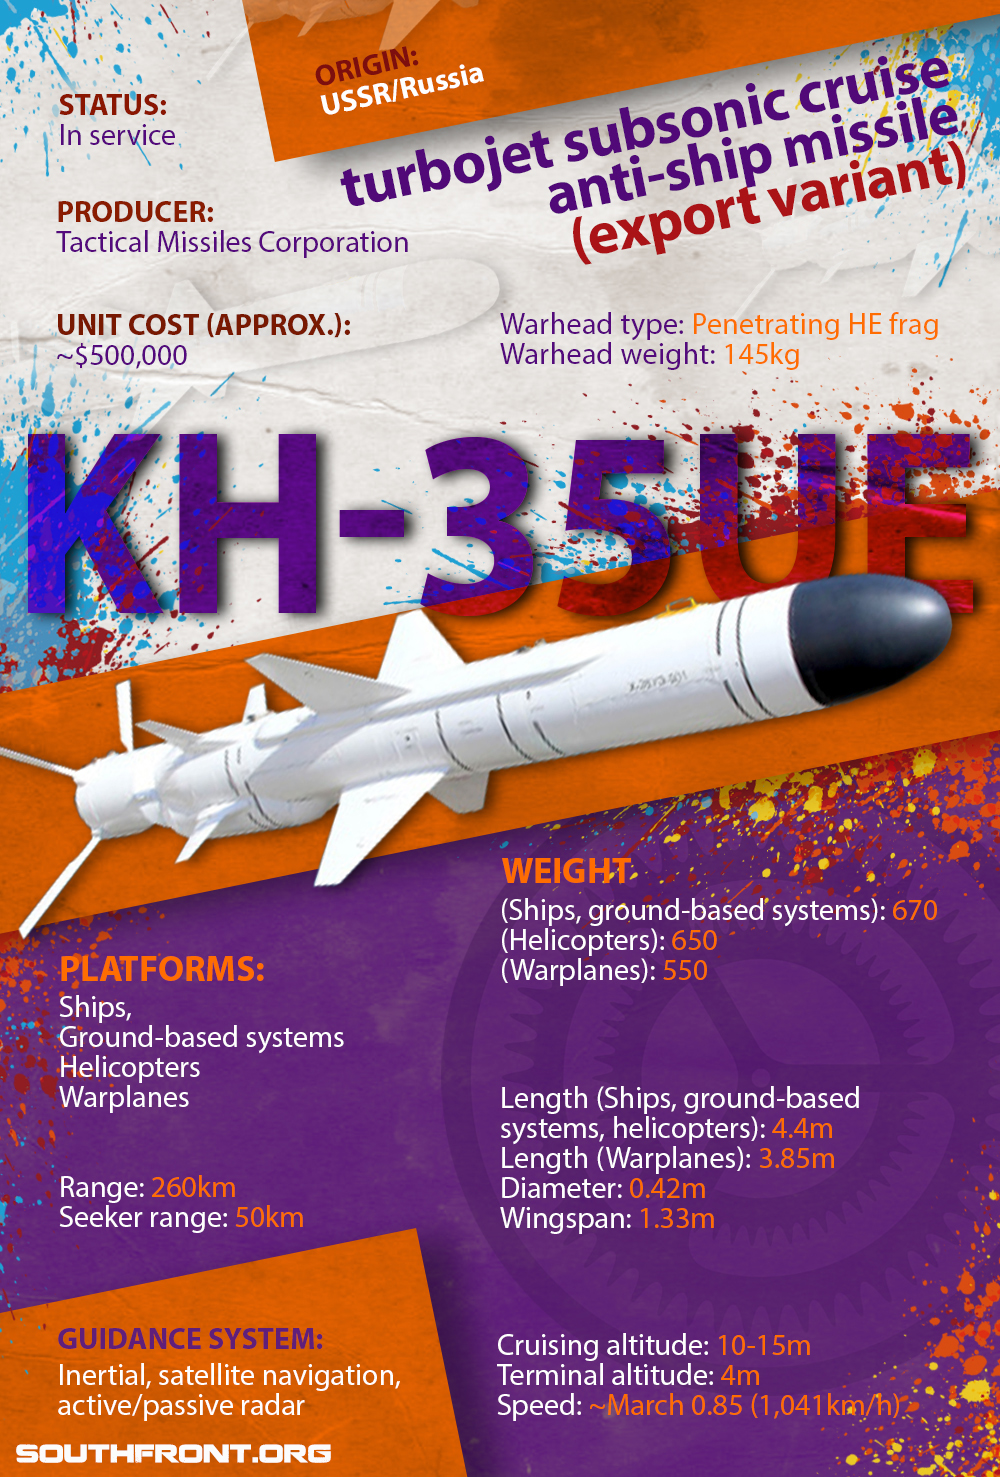 Kh-35UE Turbojet Subsonic Cruise Anti-Ship Missile (Infographics)